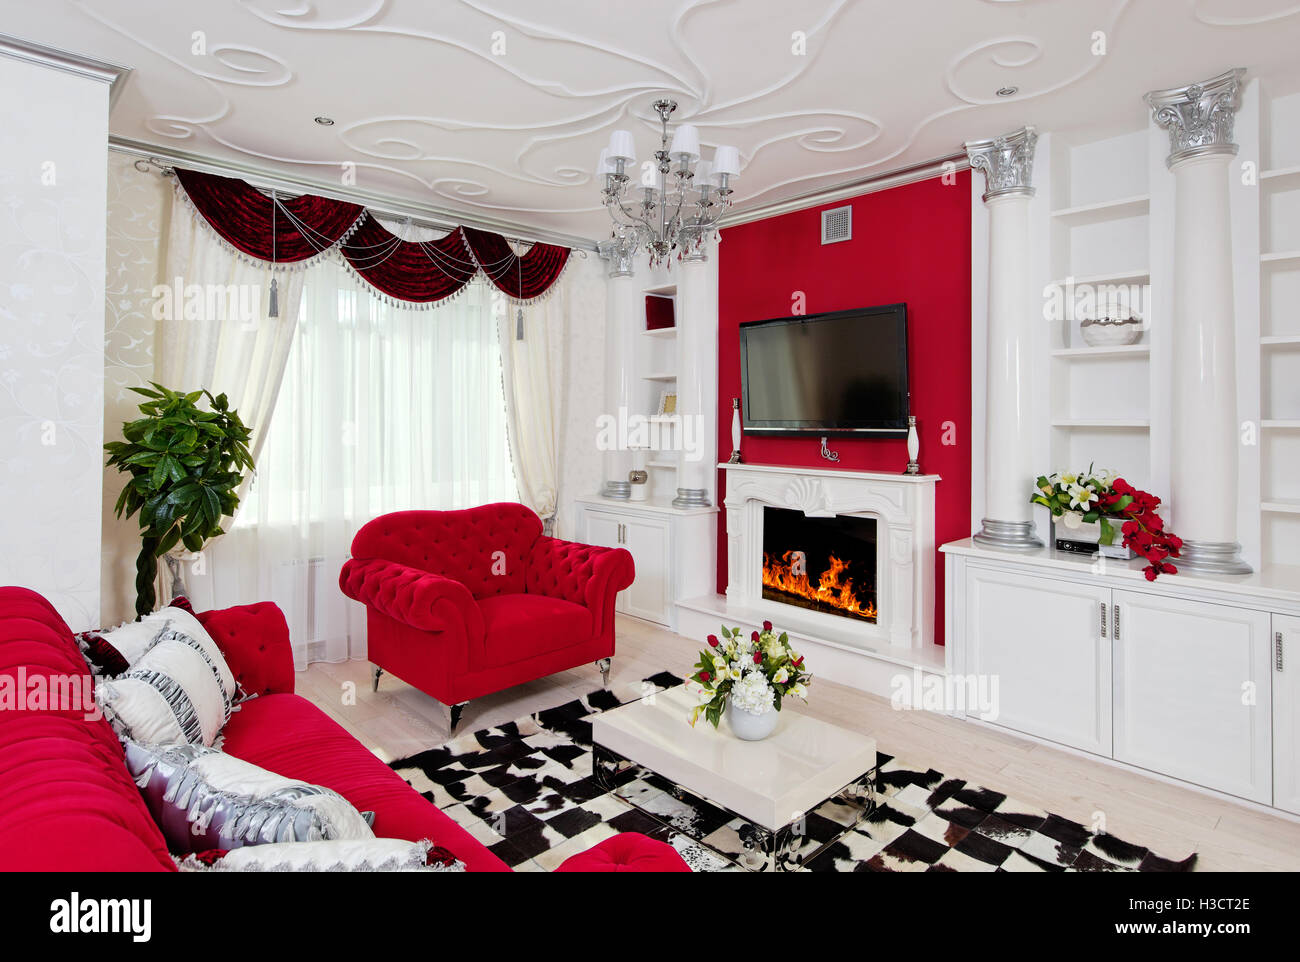 Classical Living Room Interior In White Silver And Red Colors Stock Photo Alamy